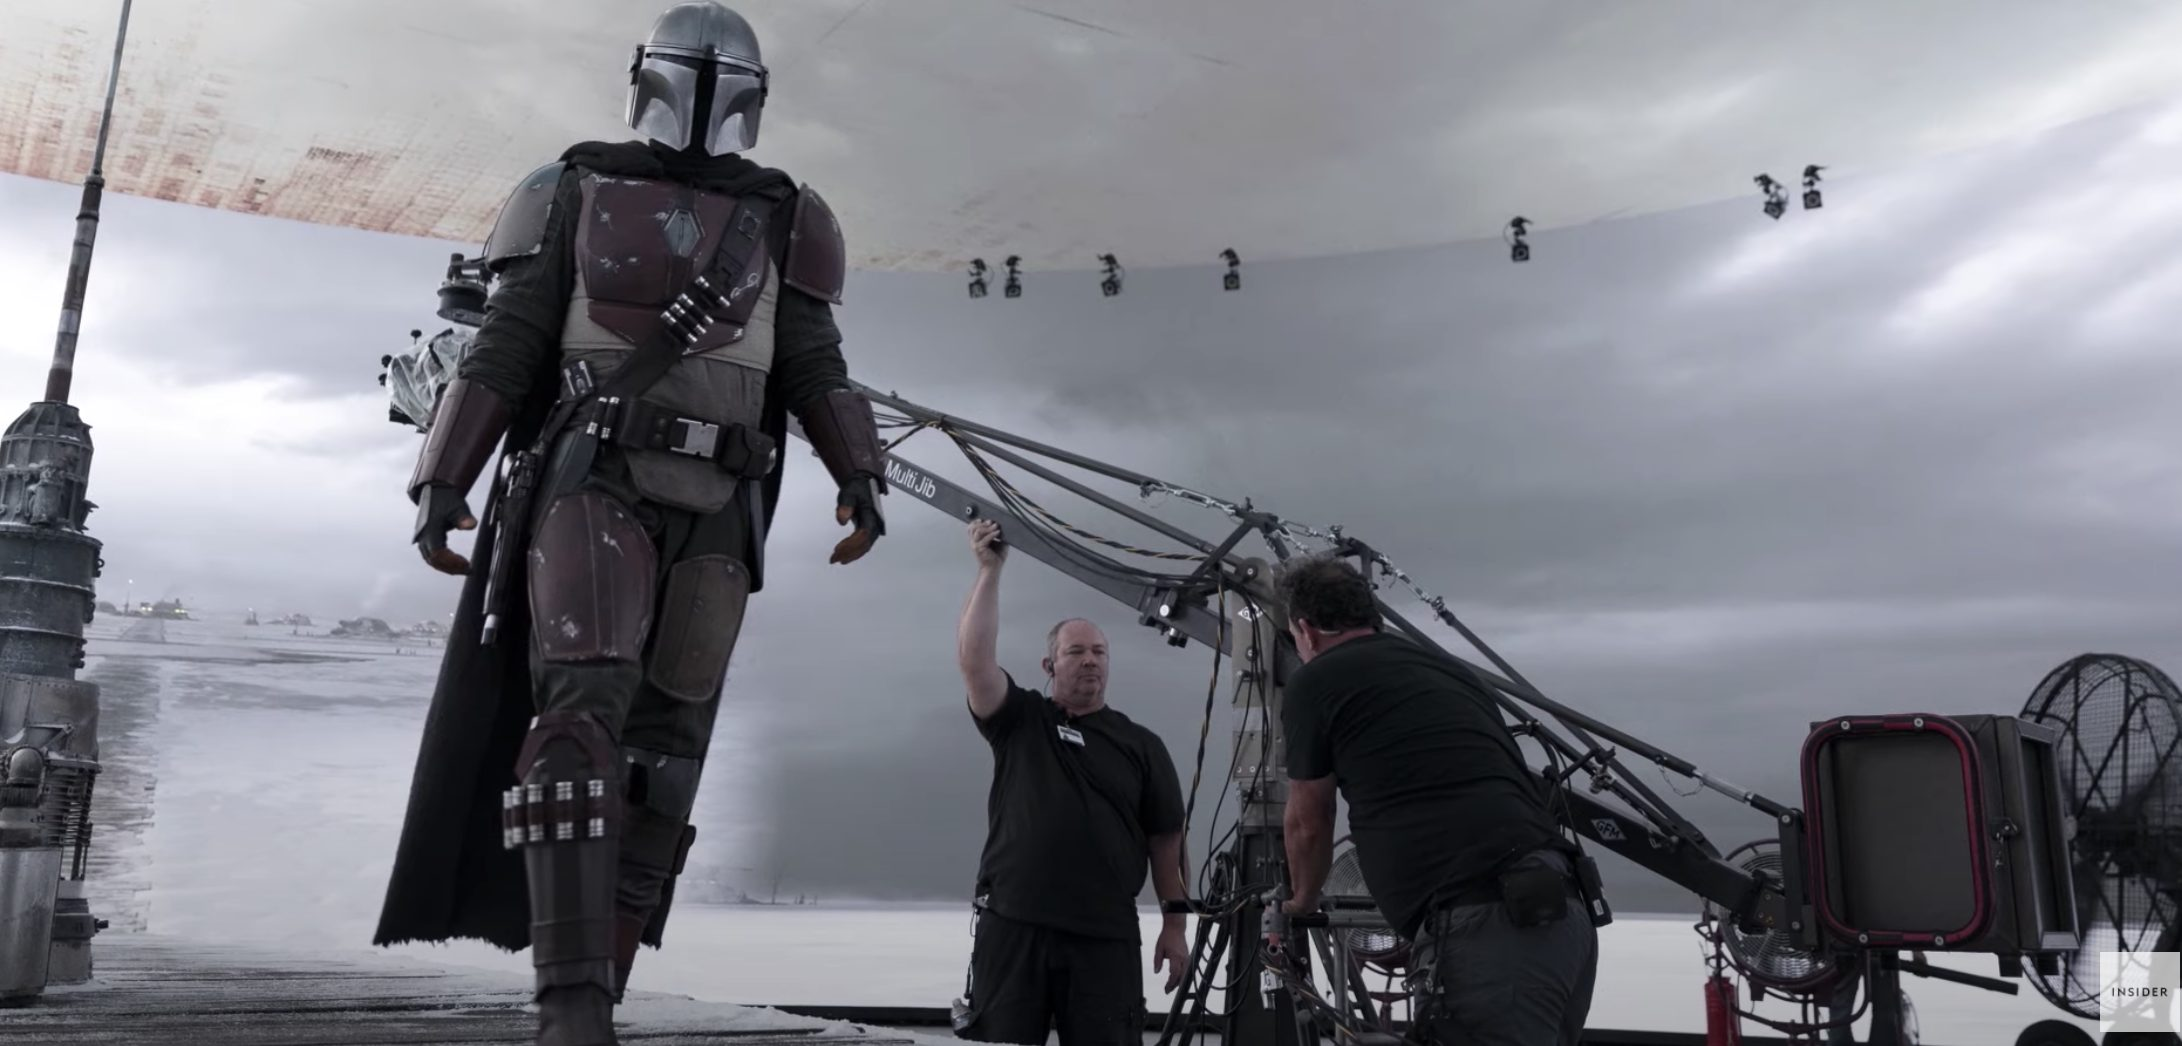 The Makers Of 'The Mandalorian' Used Video Game Technology Instead of Green Screens